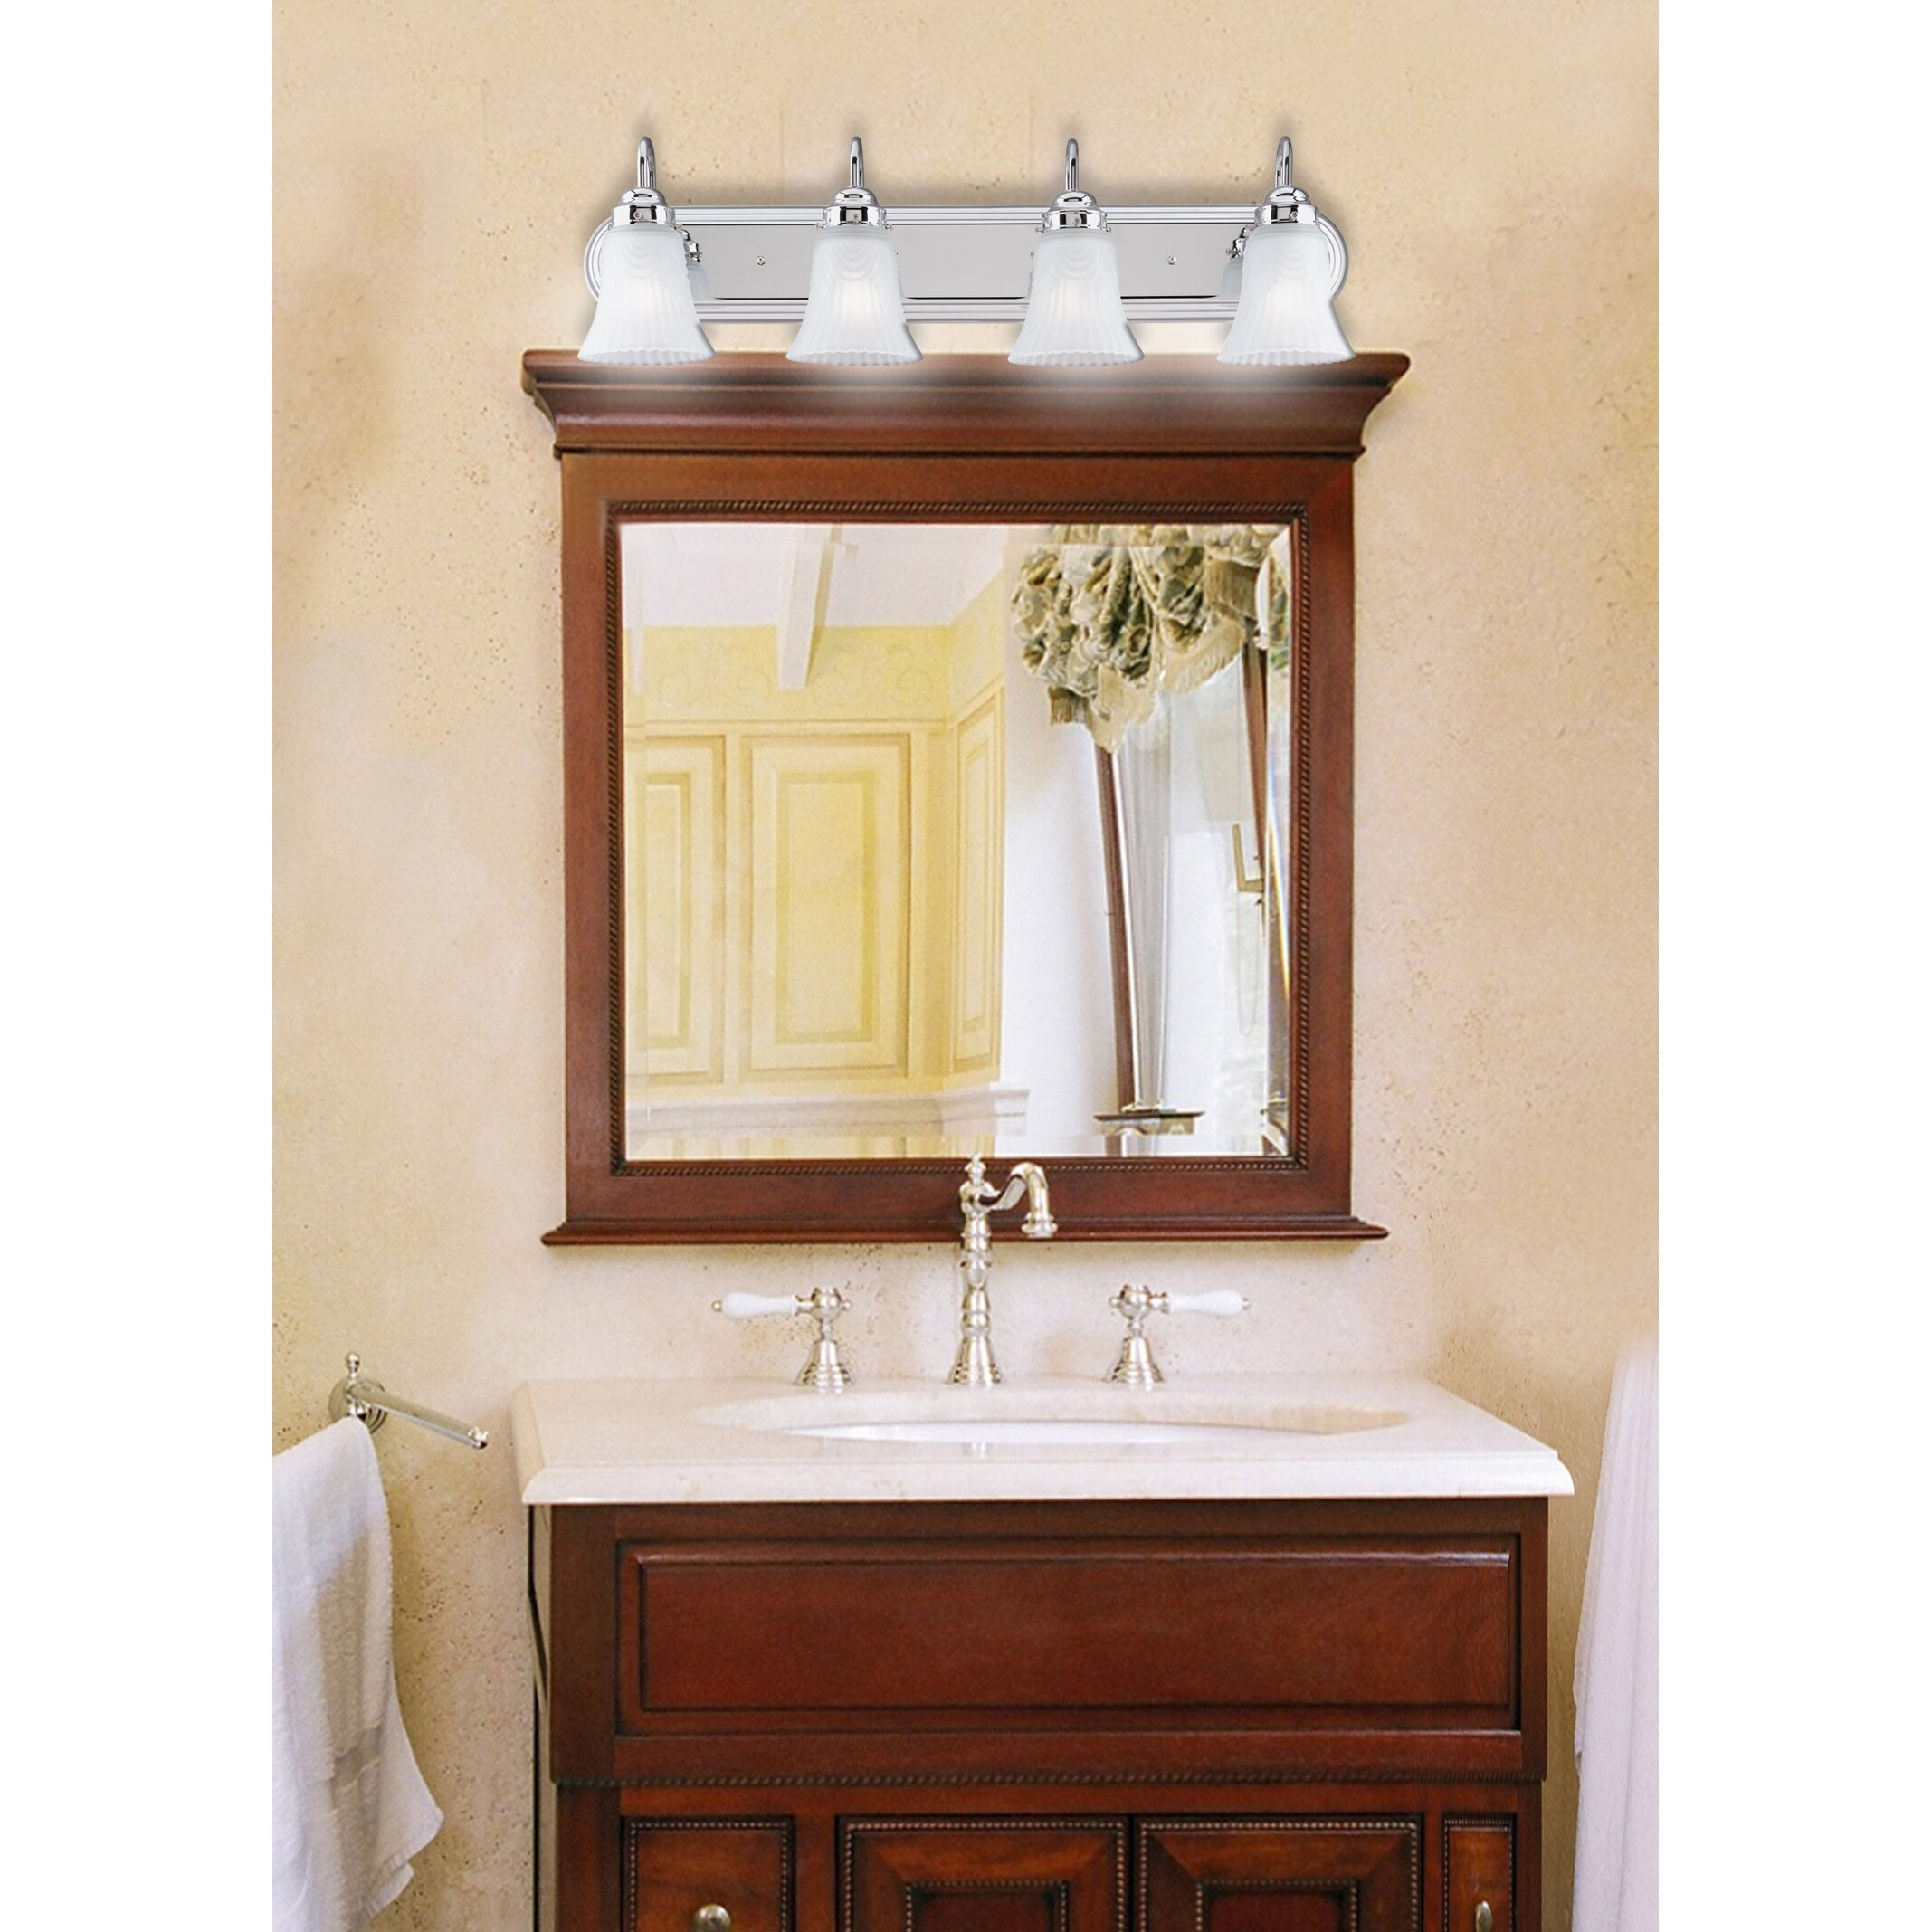 4 light bathroom vanity light wayfair